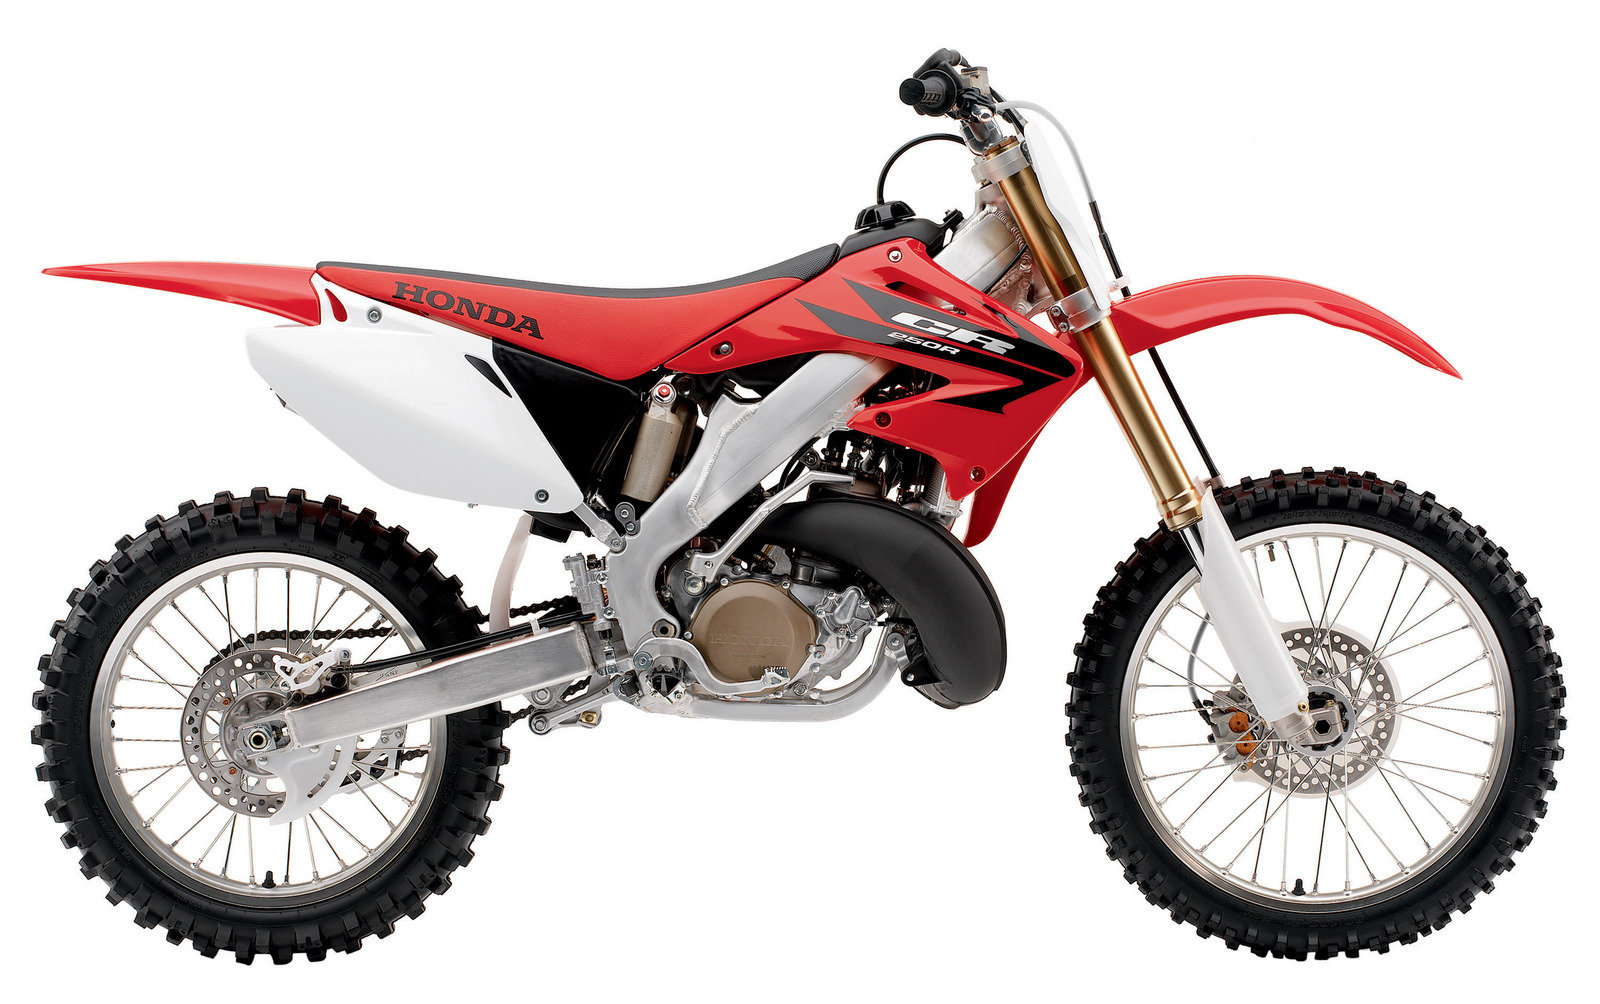 2006 honda cr250r gallery 84583 top speed. Black Bedroom Furniture Sets. Home Design Ideas